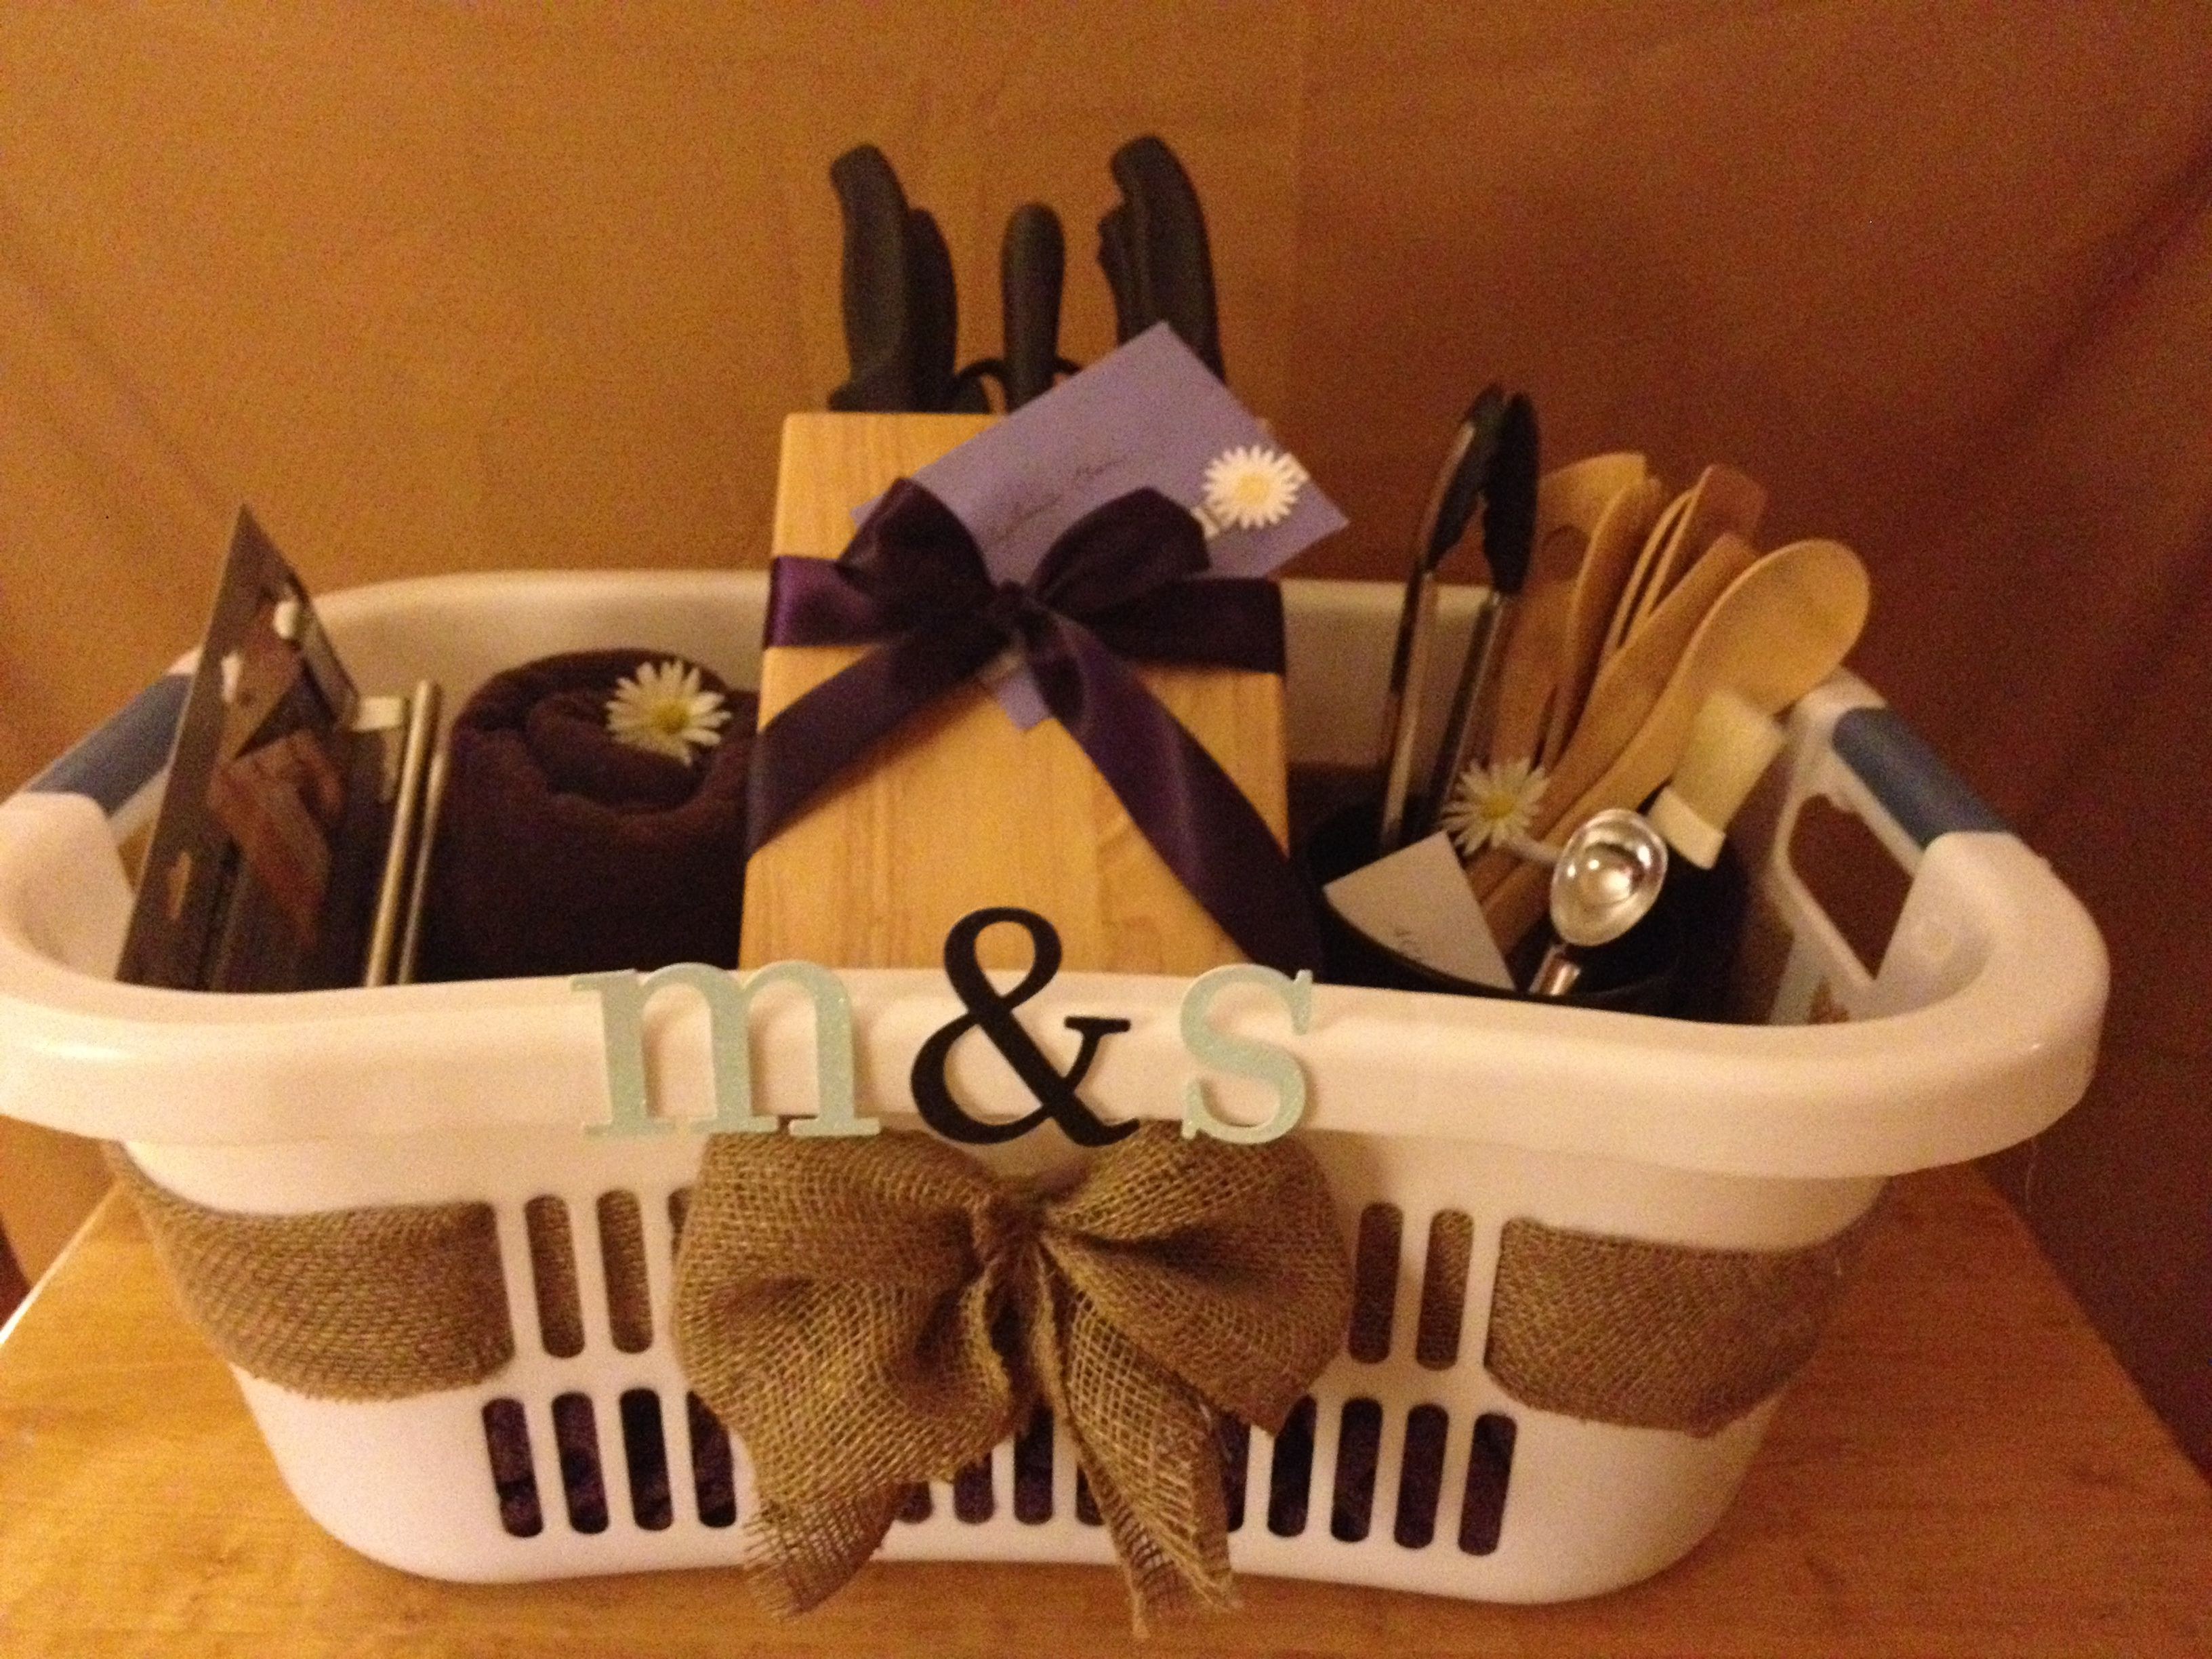 For A Beautiful And Personalized Wedding Gift Order Items From The Bride Grooms Registry Then Decorate Laundry Basket With Their Initials